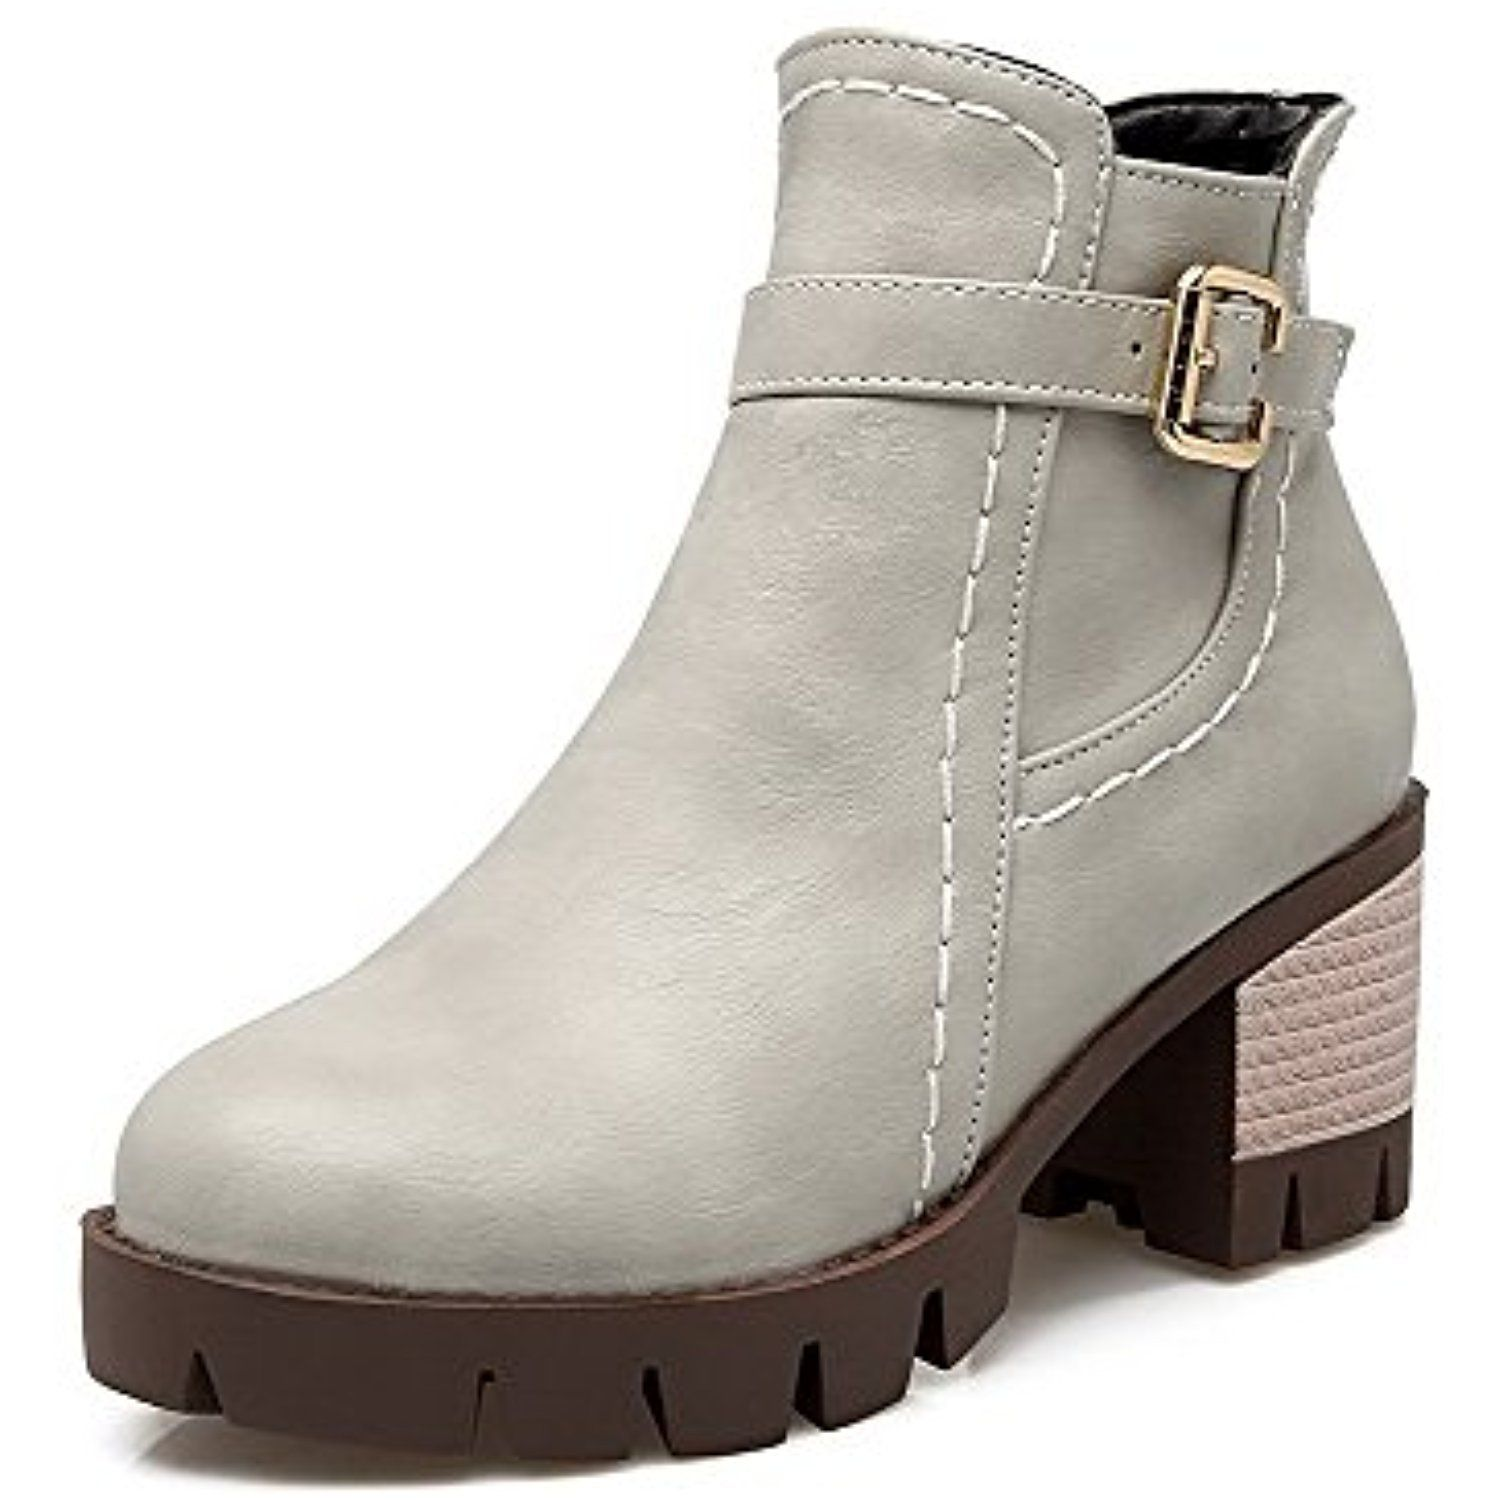 Women's Kitten-Heels Solid Round Closed Toe Soft Material Zipper Boots with Metal